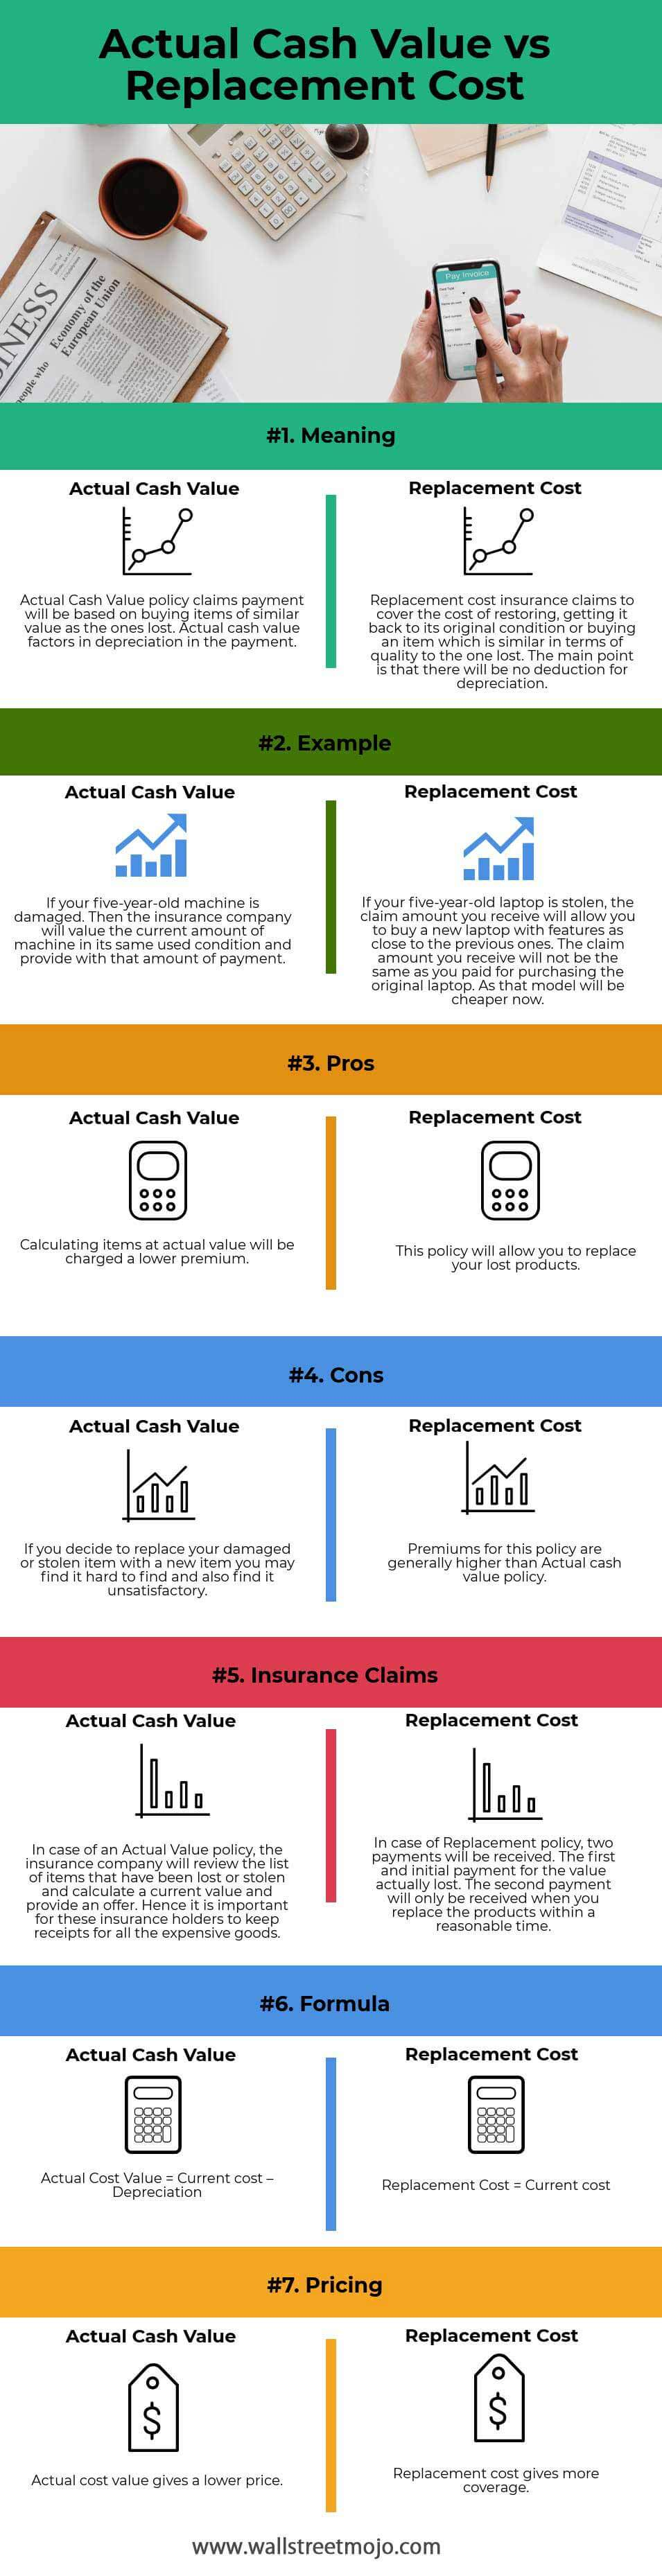 Actual-Cash-Value-vs-Replacement-Cost-info